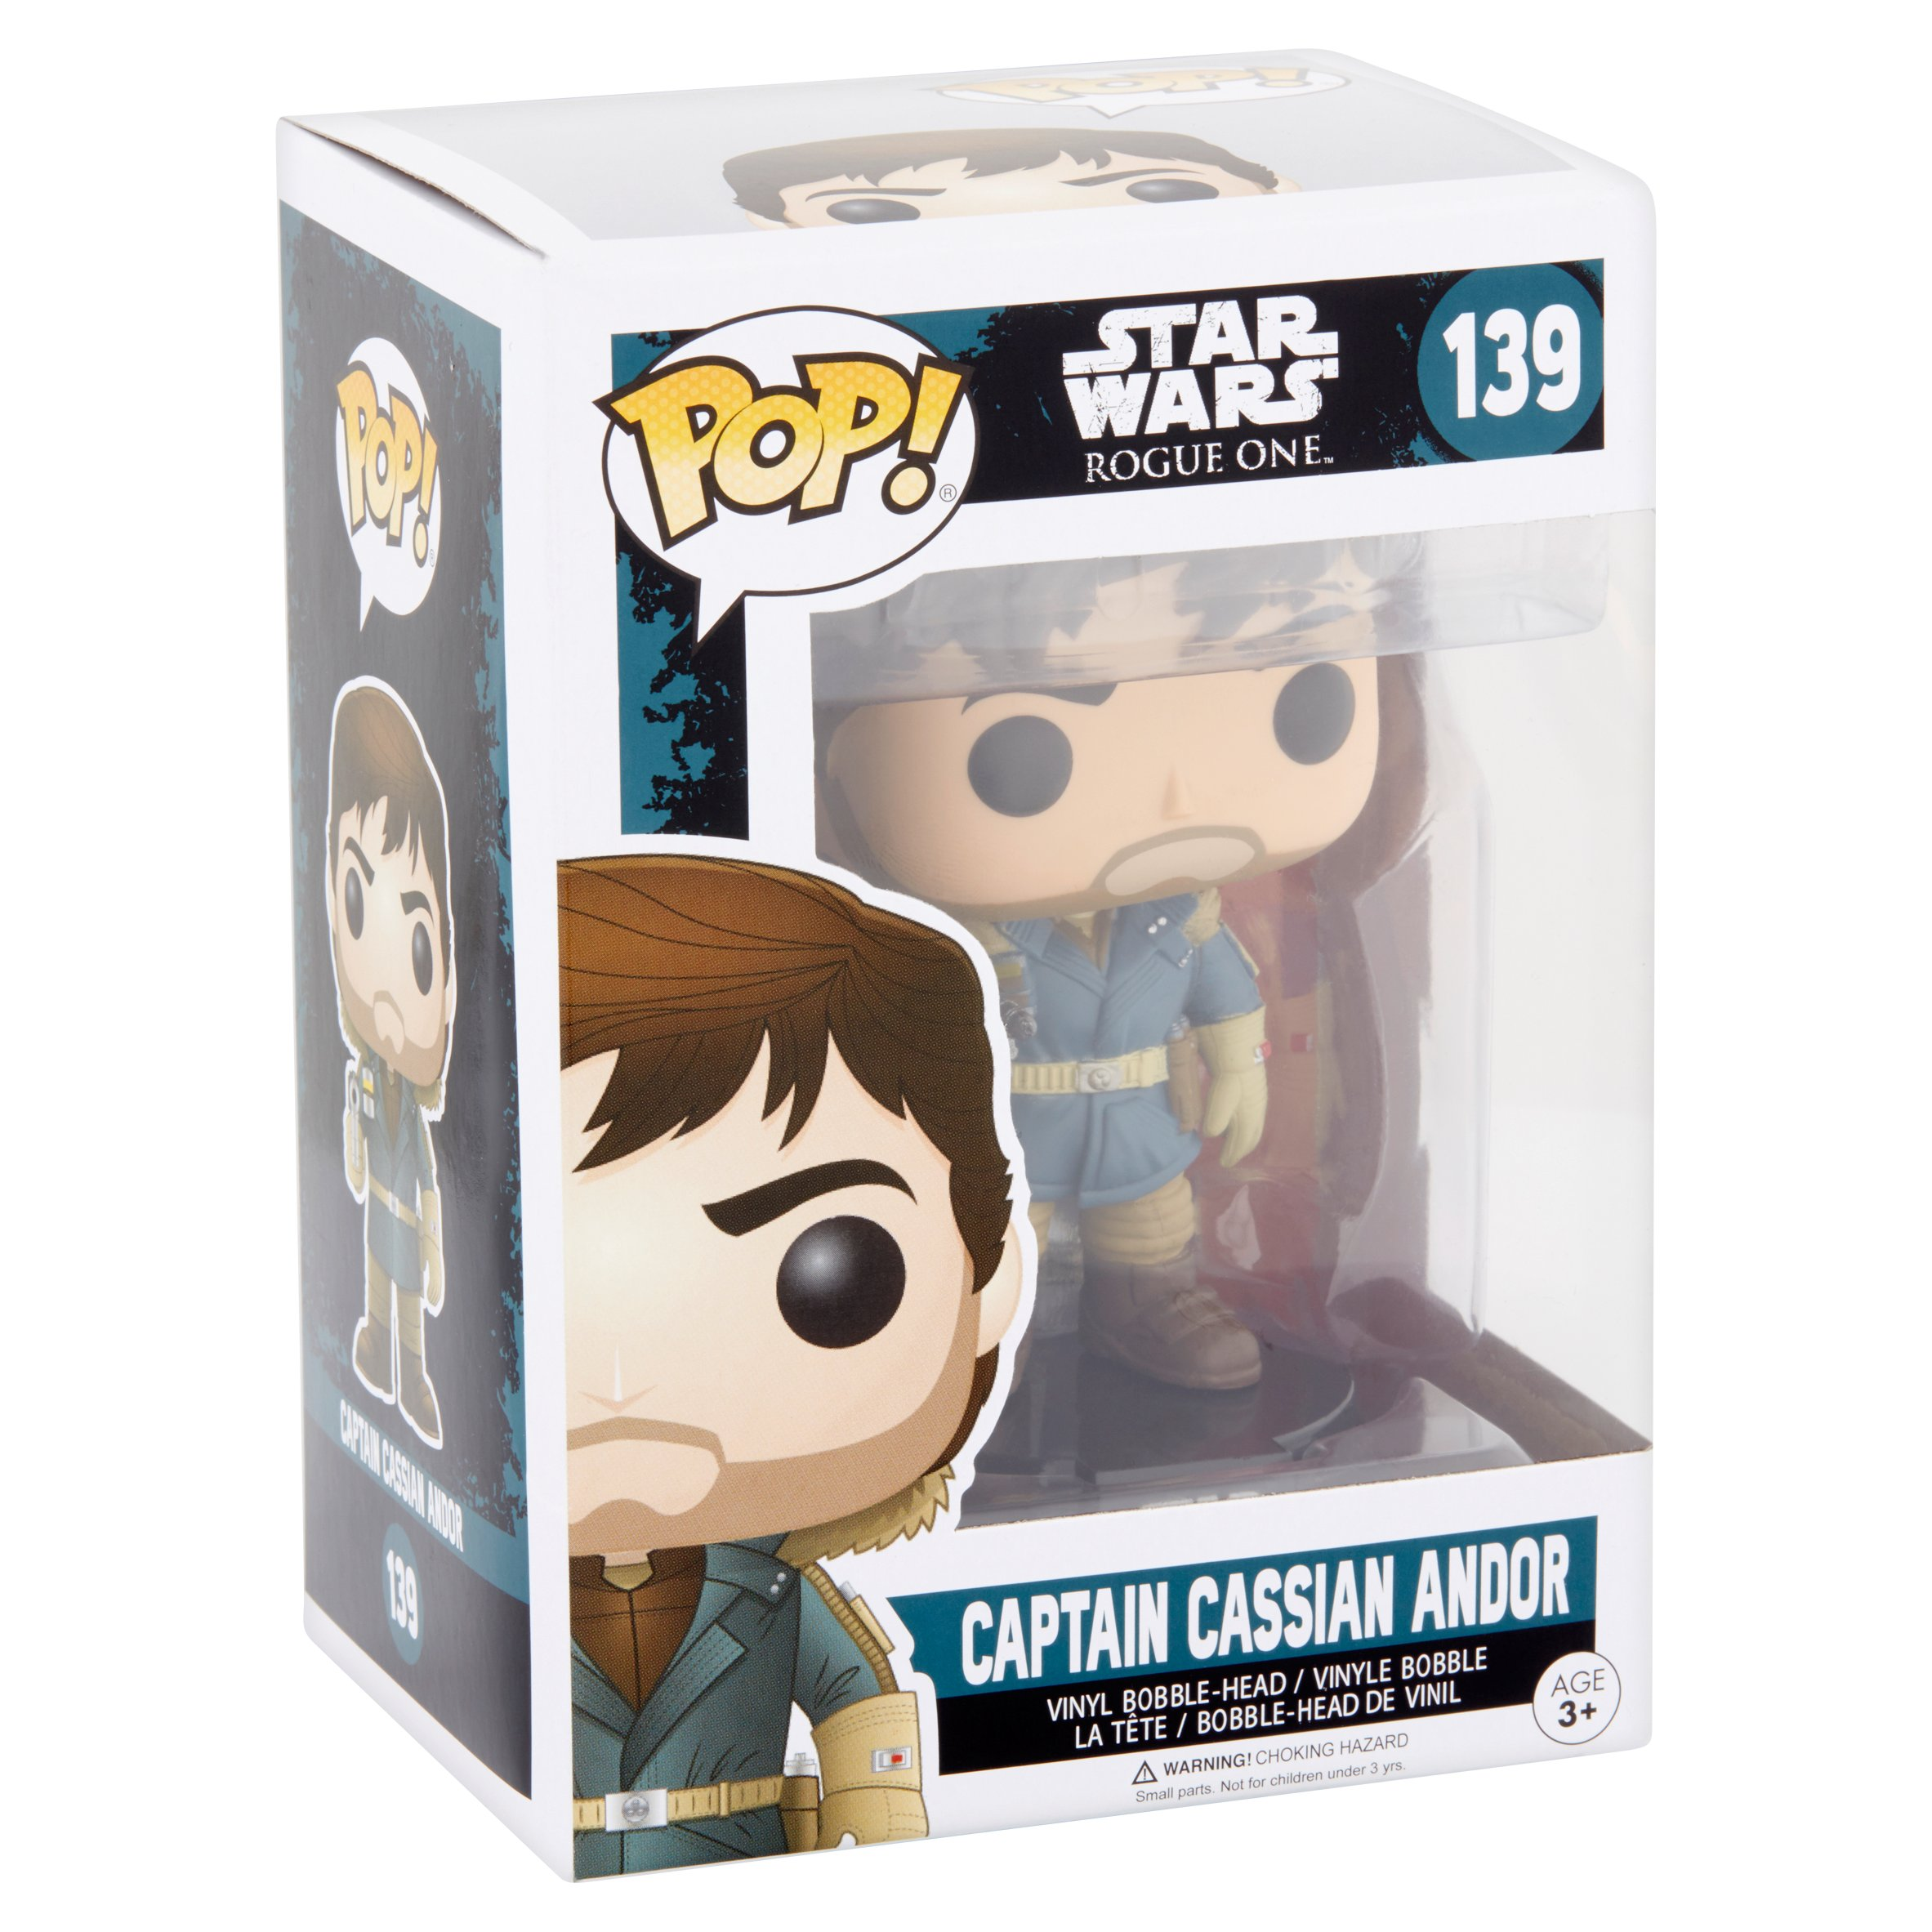 RO FP Captain Cassian Andor Bobble Head Toy